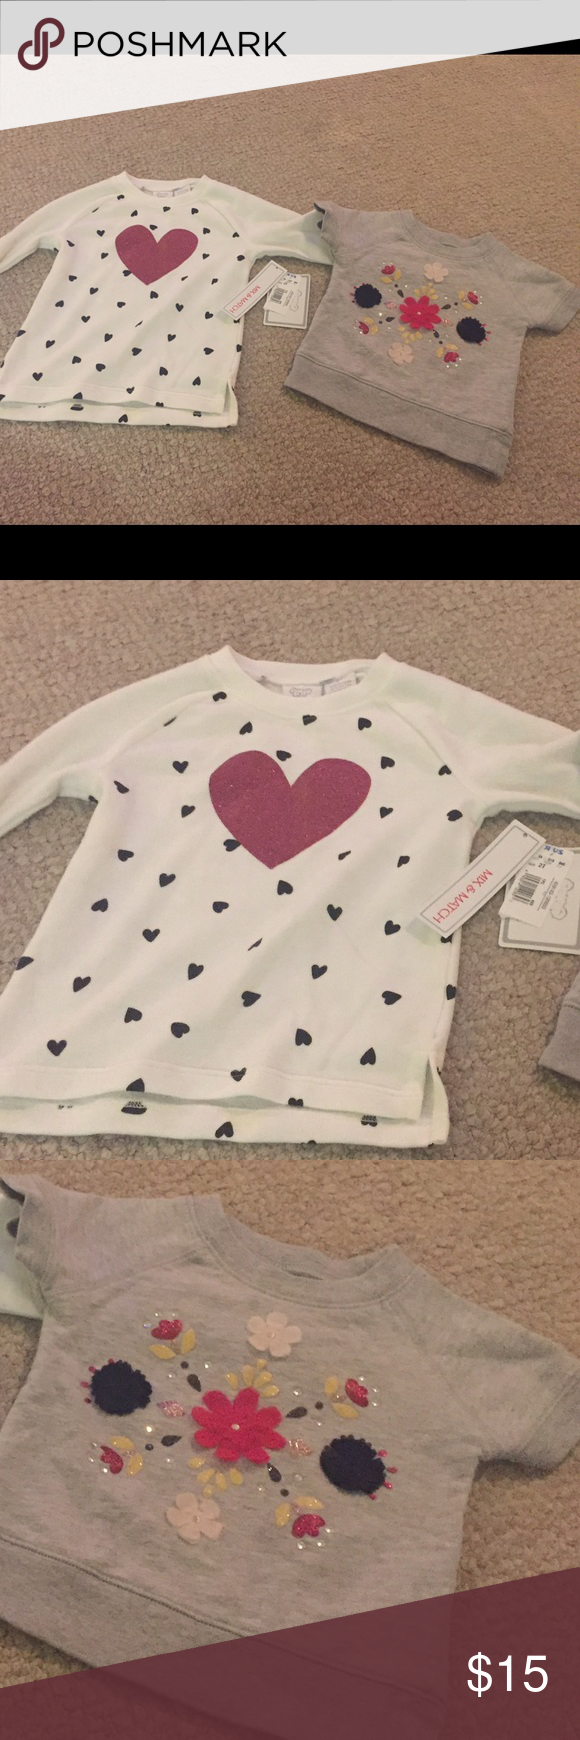 Two 2T sweaters Two 2T sweaters one NWT from babies r us and one from carters Carter's Shirts & Tops Sweaters